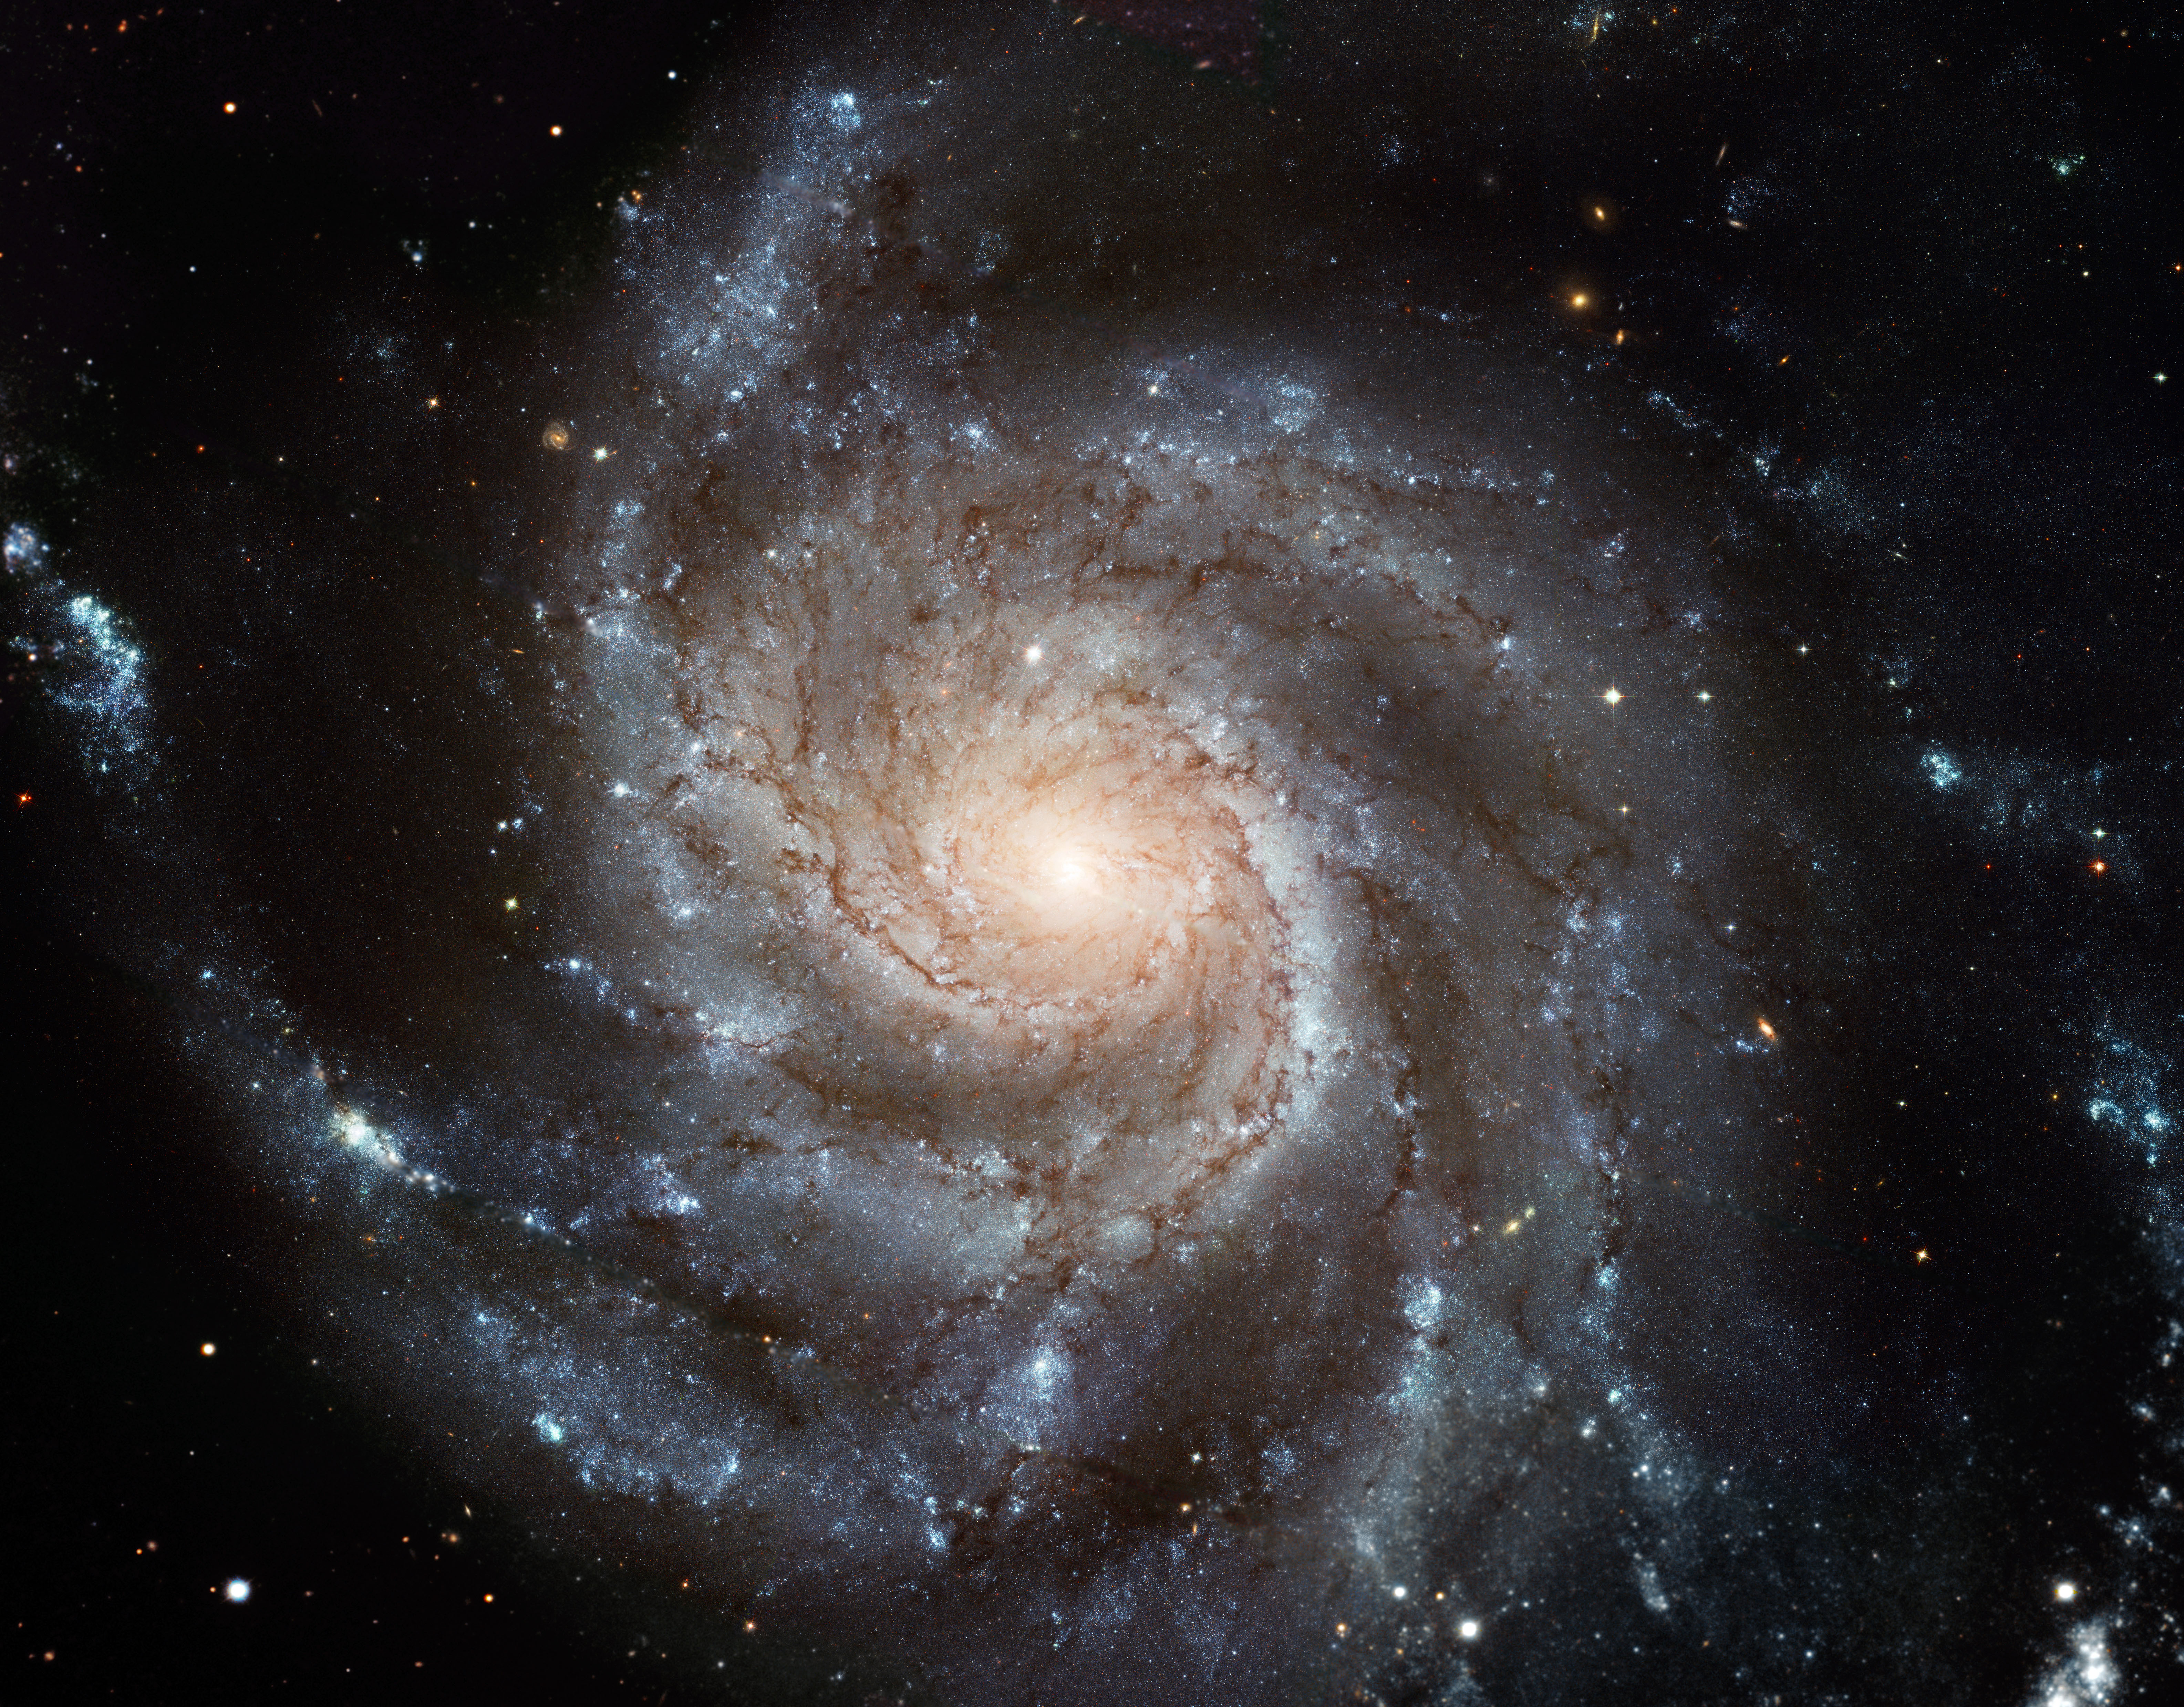 Stock Photography: Hubble Space Telescope Image of Messier 101.